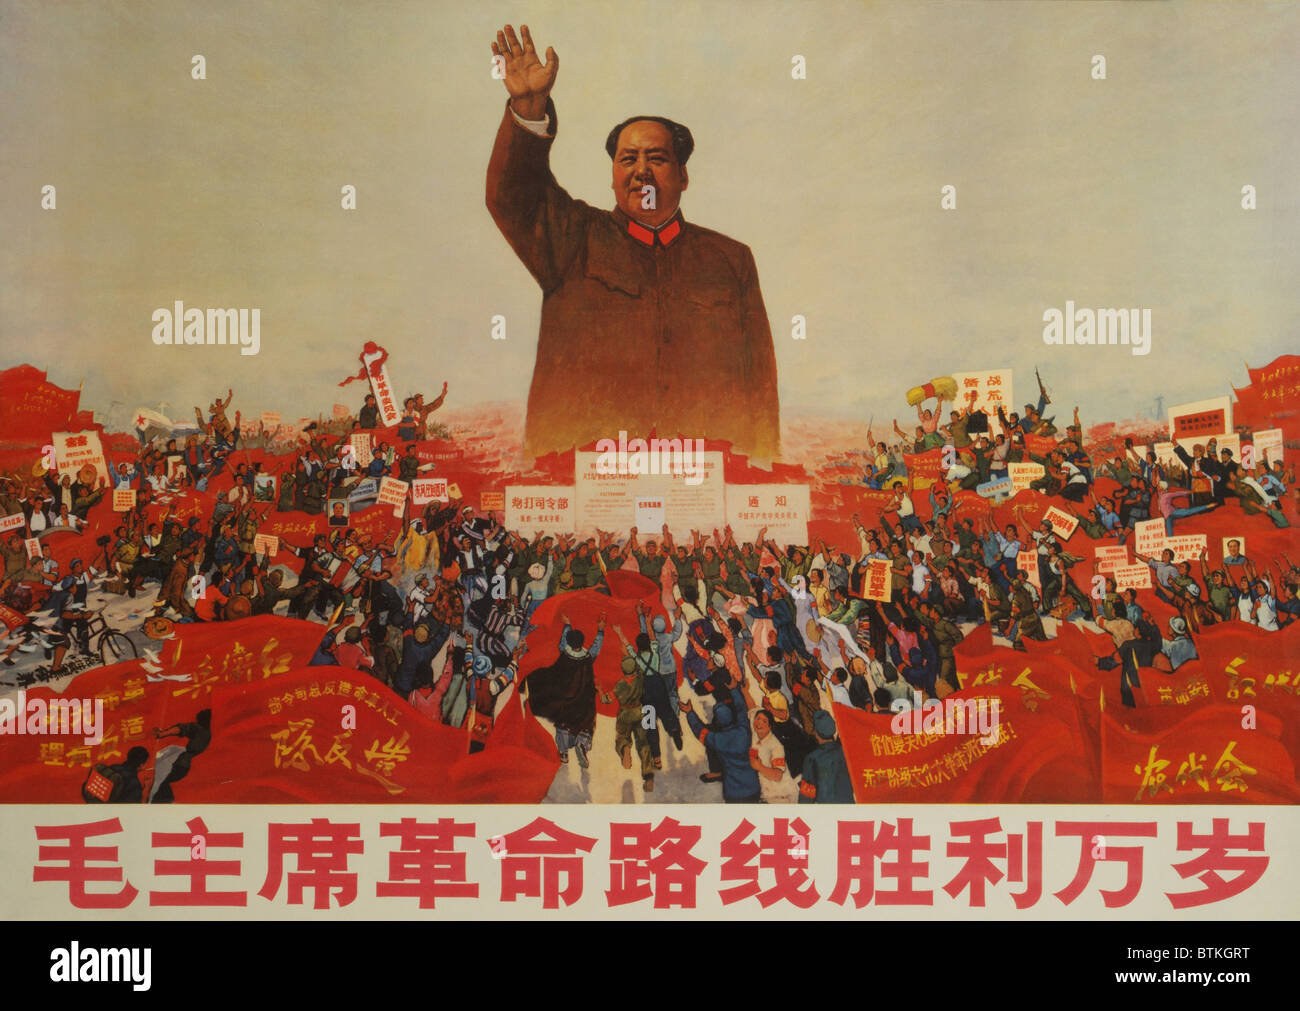 Long live the victory of Chairman Mao's revolutionary line. Poster shows Mao Zedong greeting mass rally of people - Stock Image